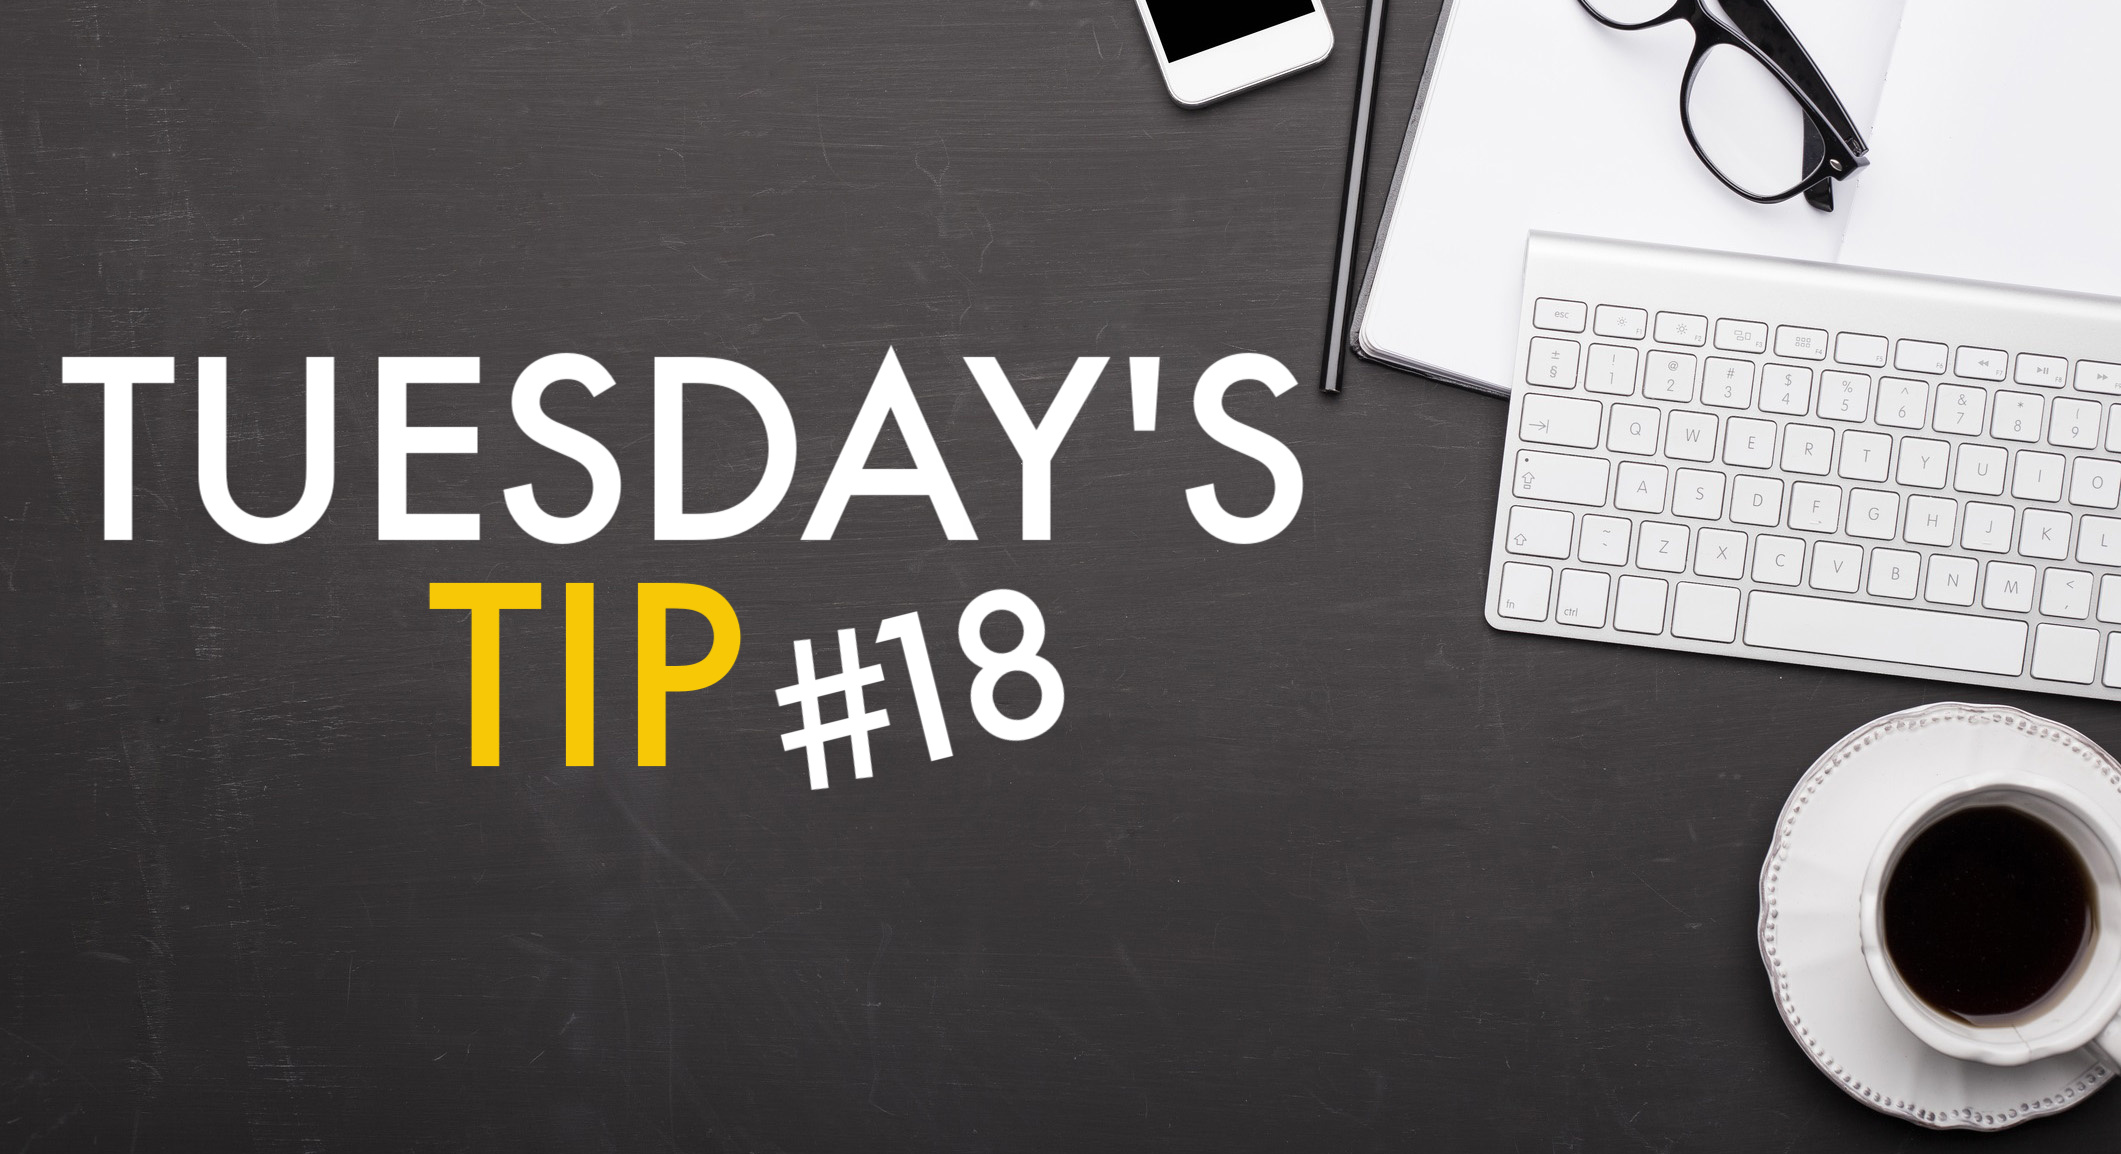 Tuesdays_Tip_18_2019-10-21